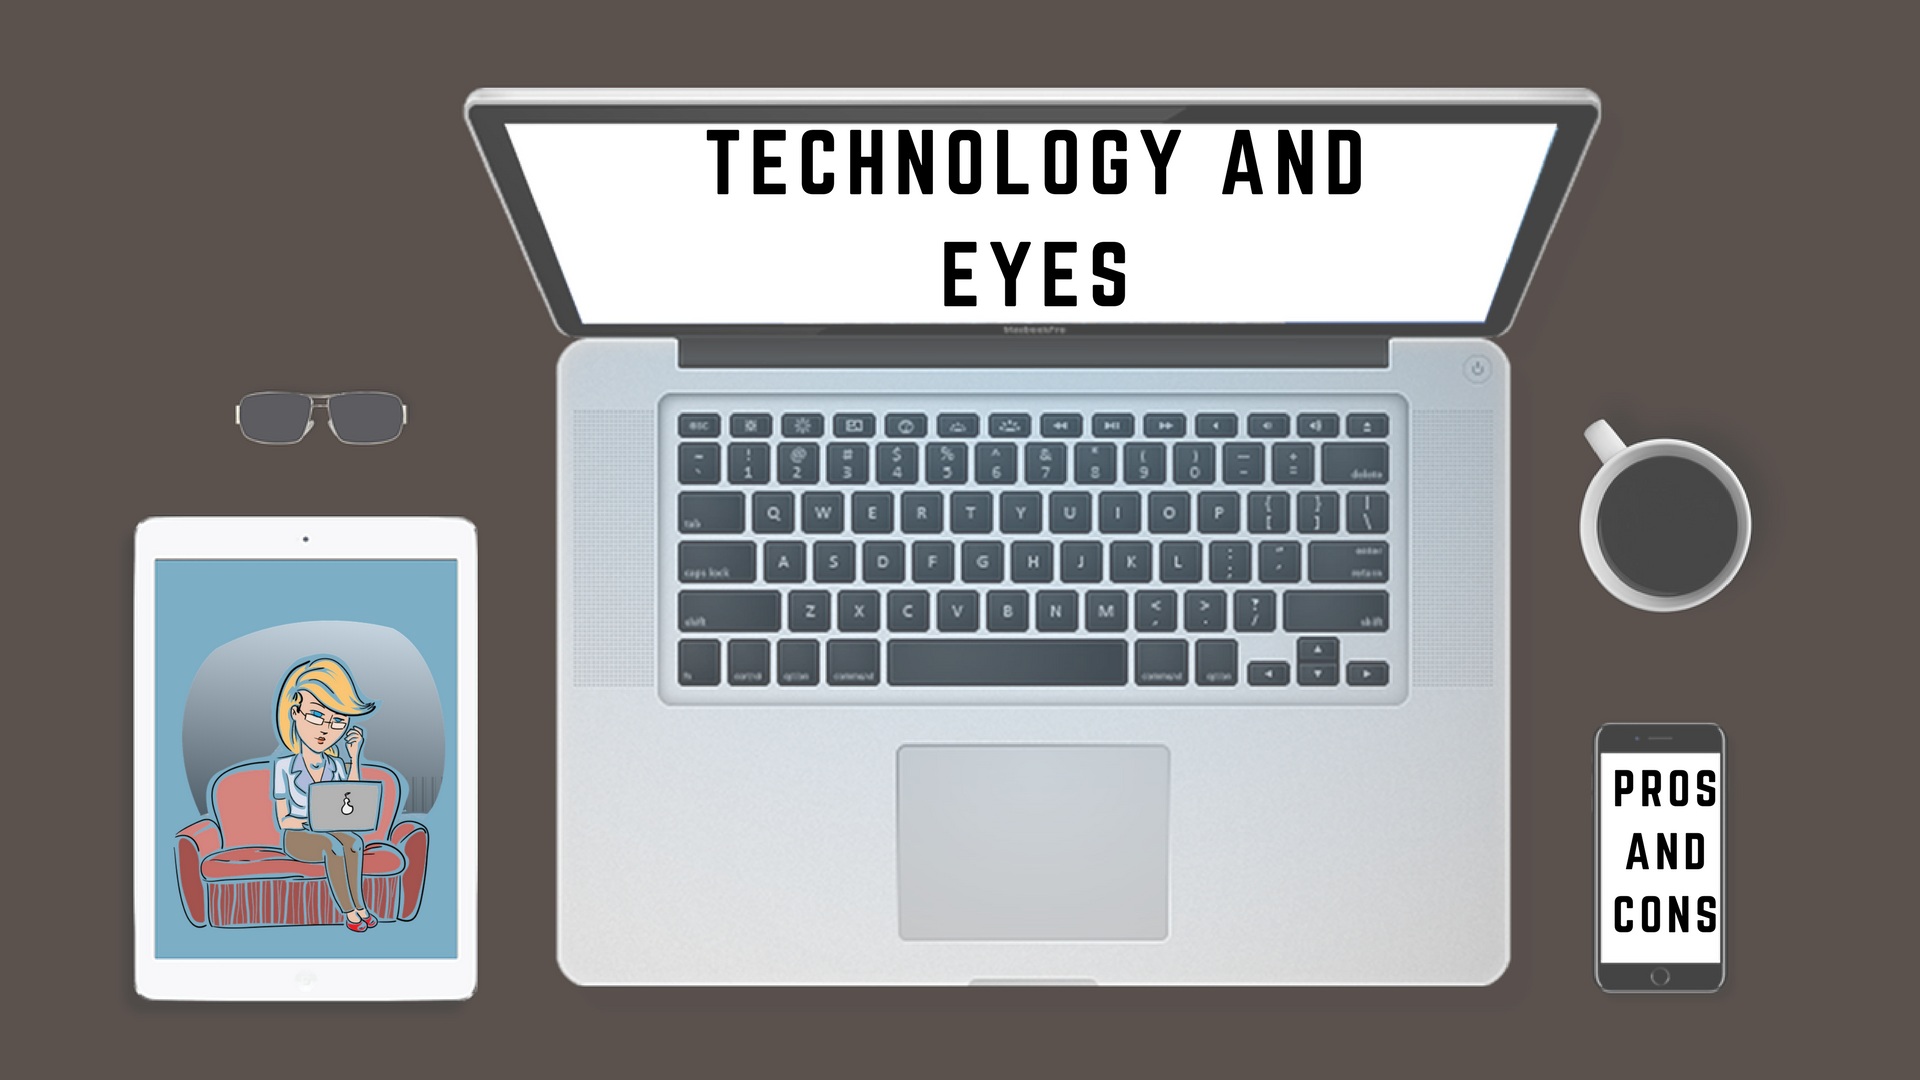 TECHNOLOGY AND EYES